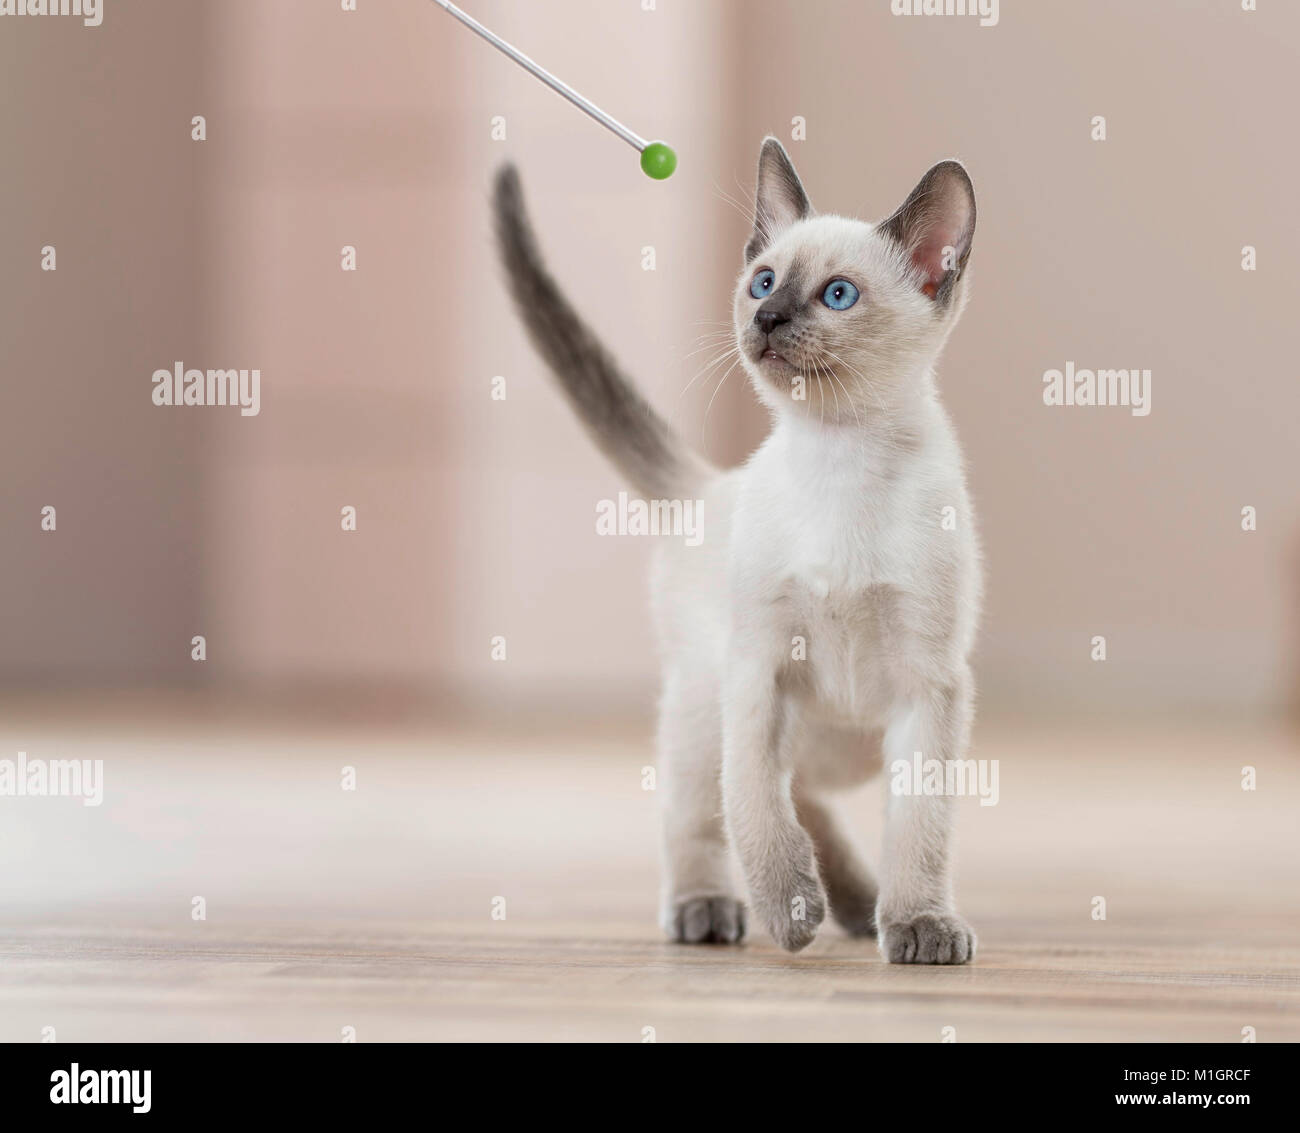 Siamese Stock Photos & Siamese Stock Images - Alamy